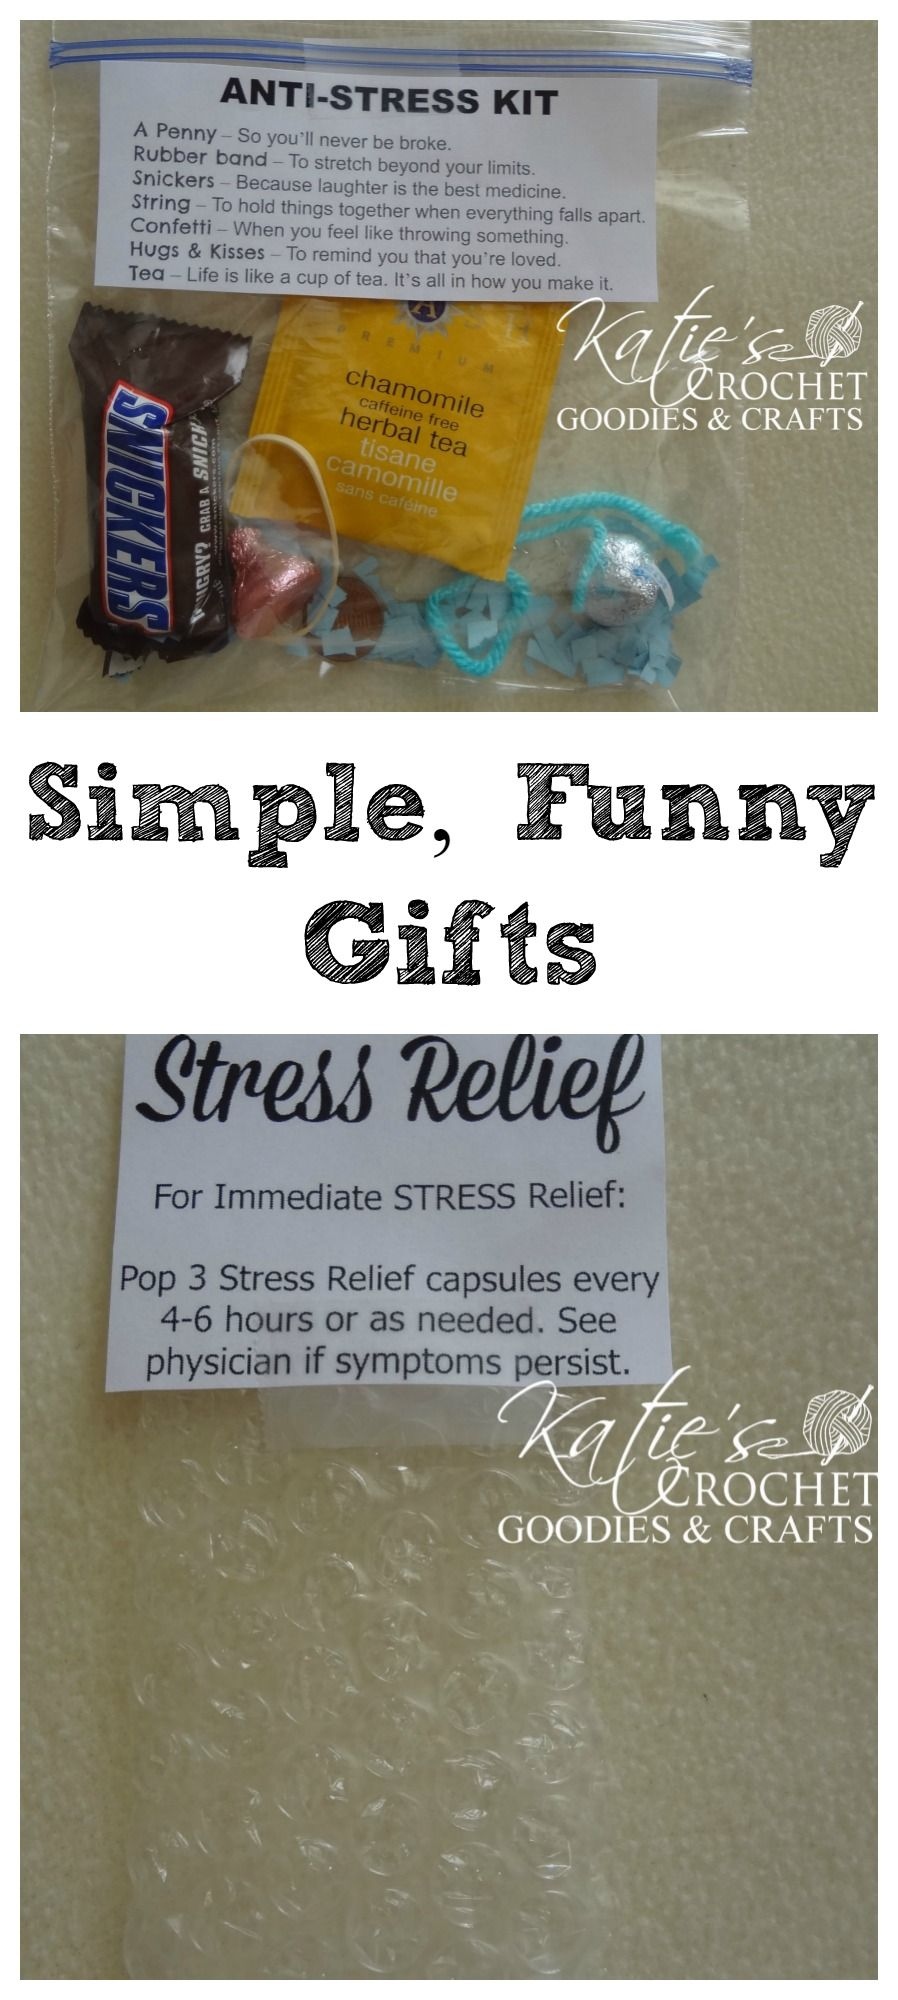 Funny stress relief gifts katies crochet goodies crafts simple funny stress relief gifts solutioingenieria Images